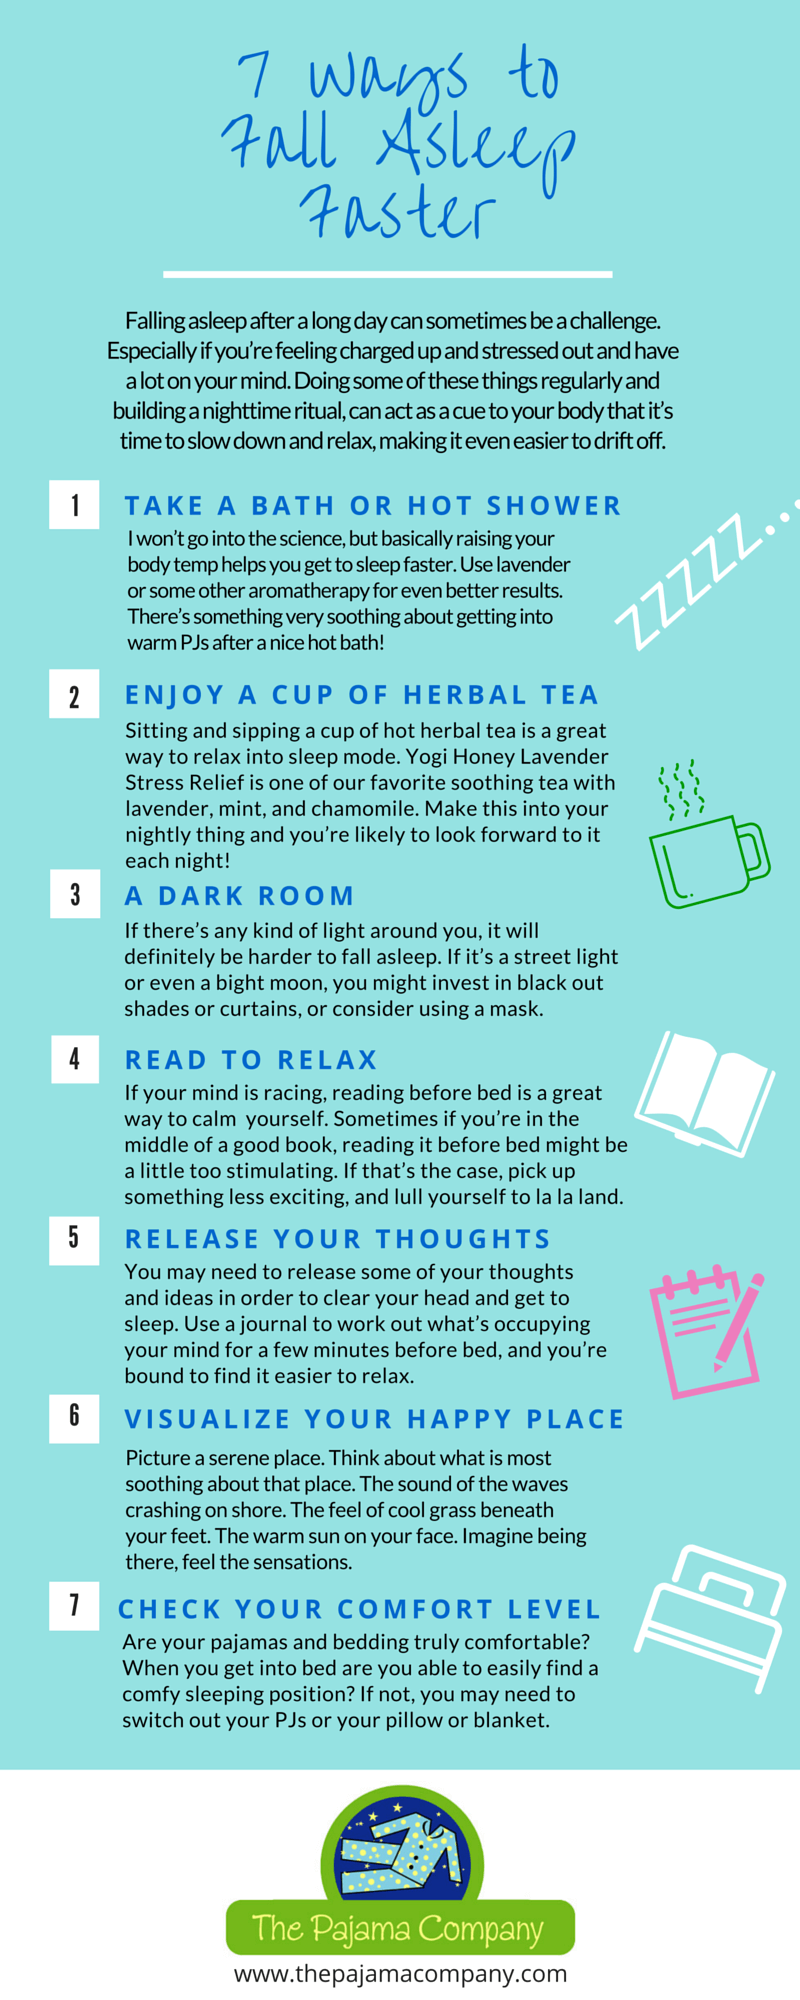 7 Ways to Fall Asleep Faster